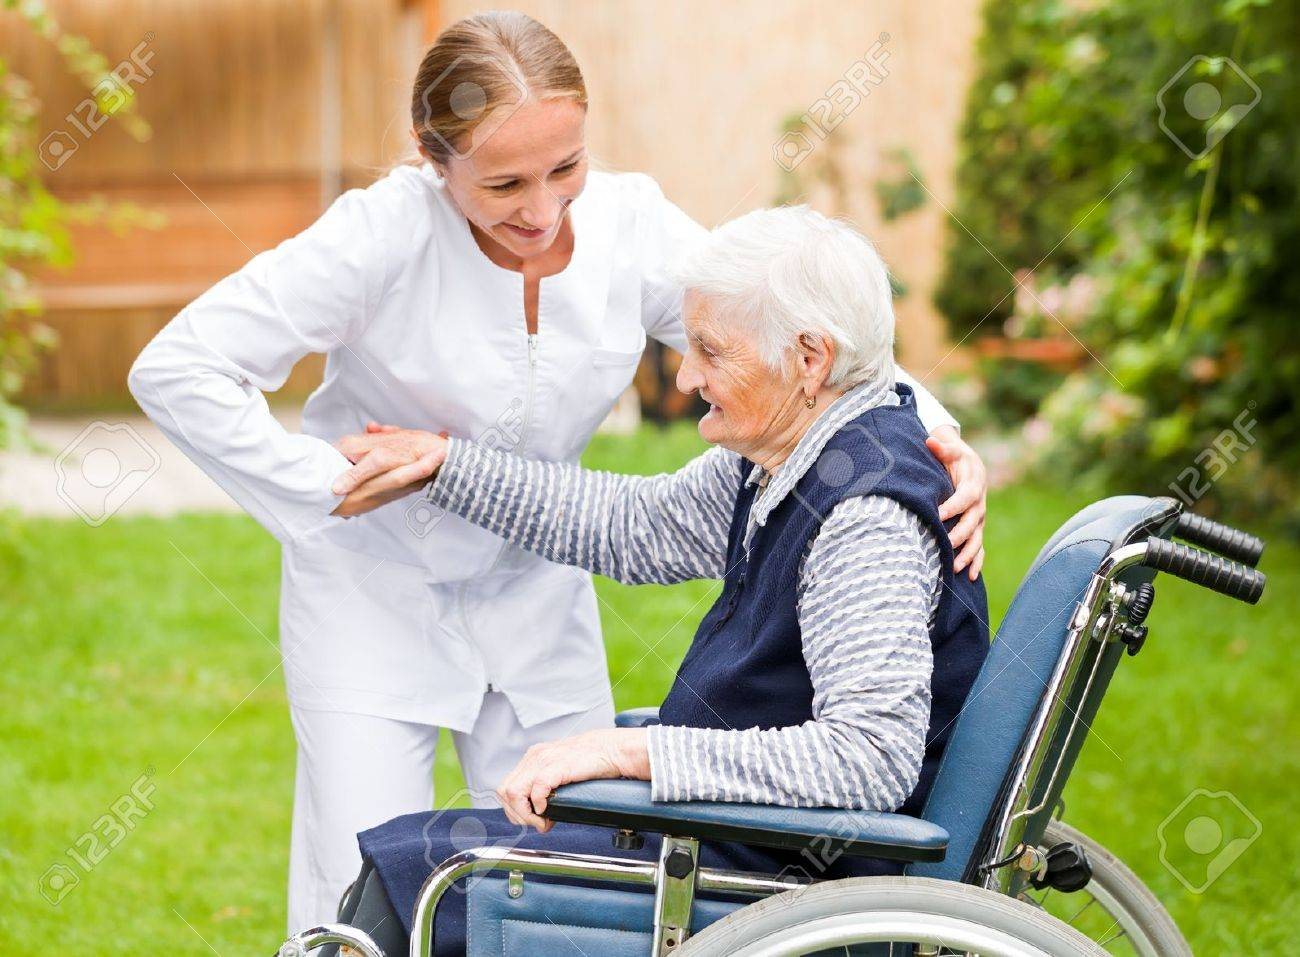 Photo of young carer helping the elderly woman Standard-Bild - 44600662